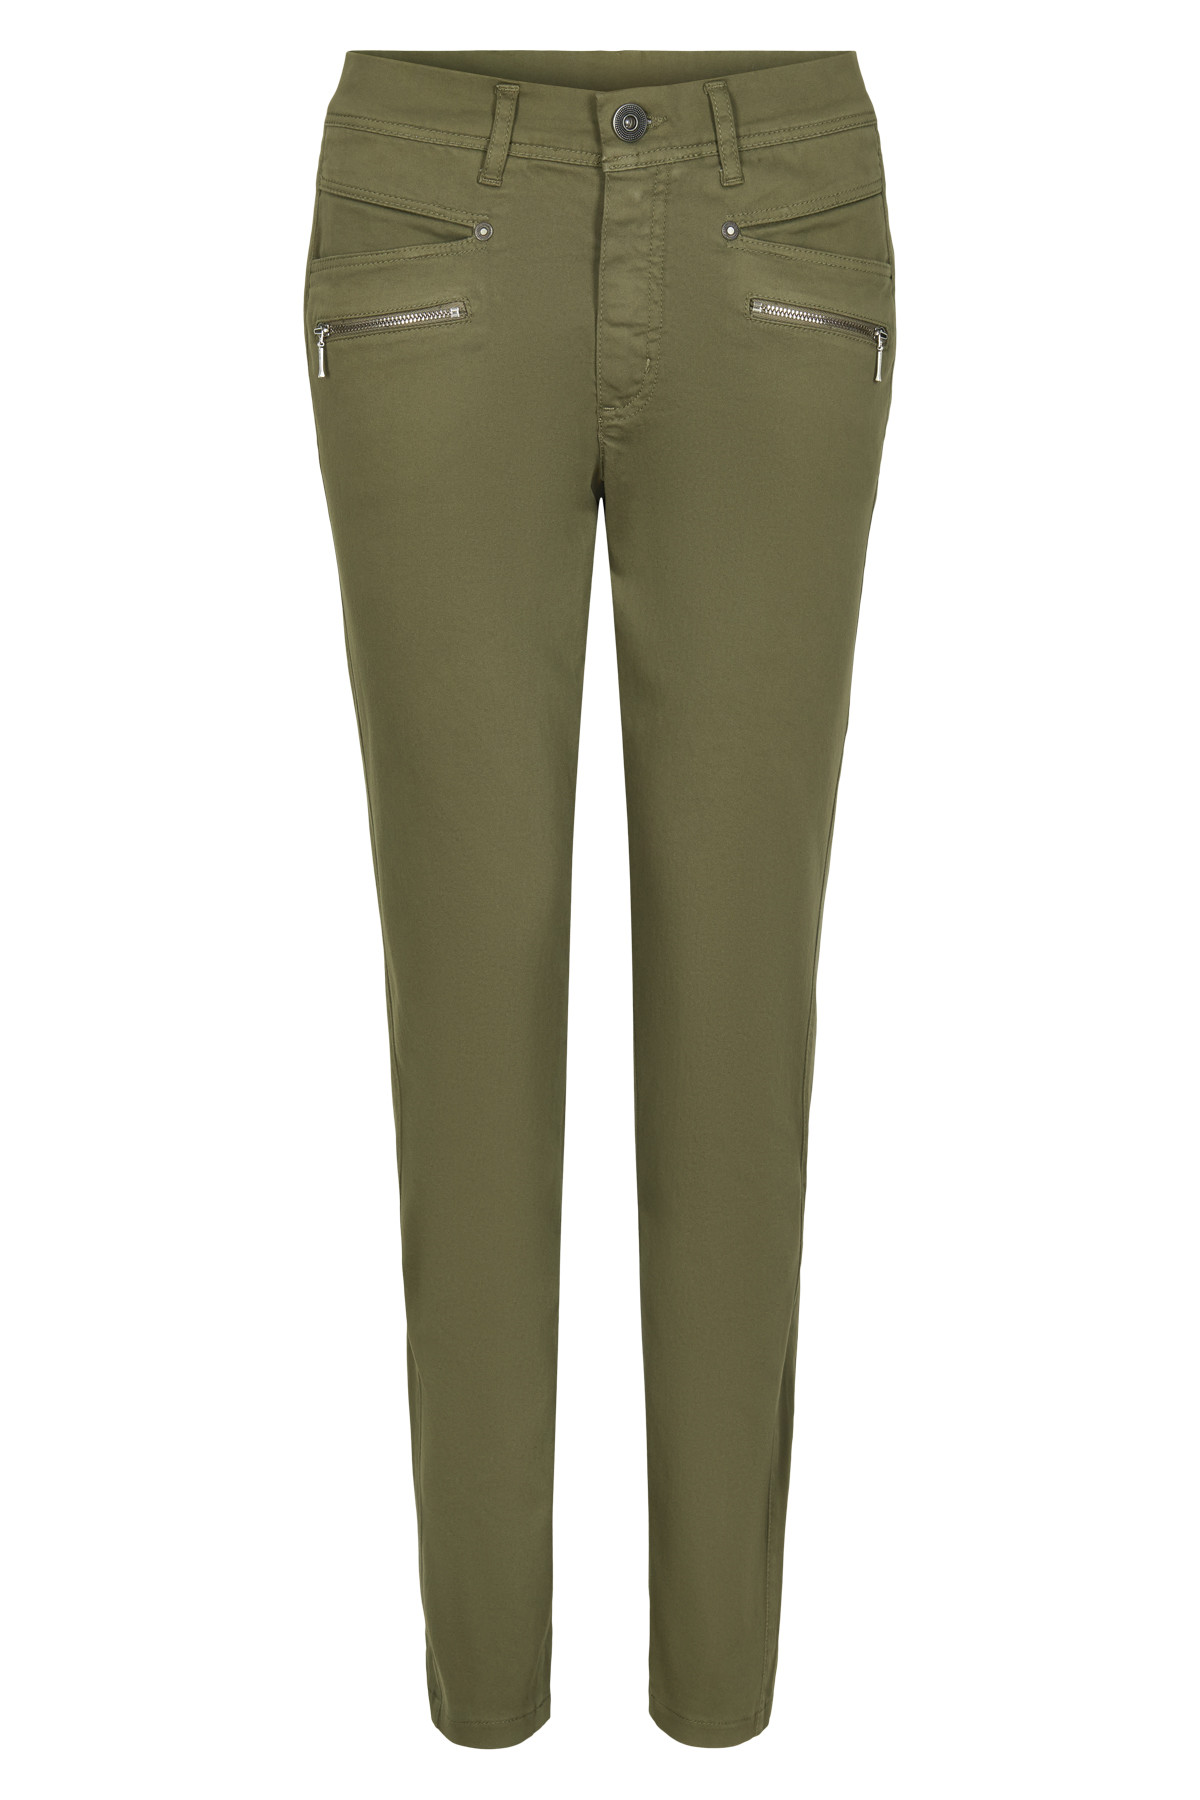 Image of 2BIZ RANY PANTS 43654 (Khaki, 44)